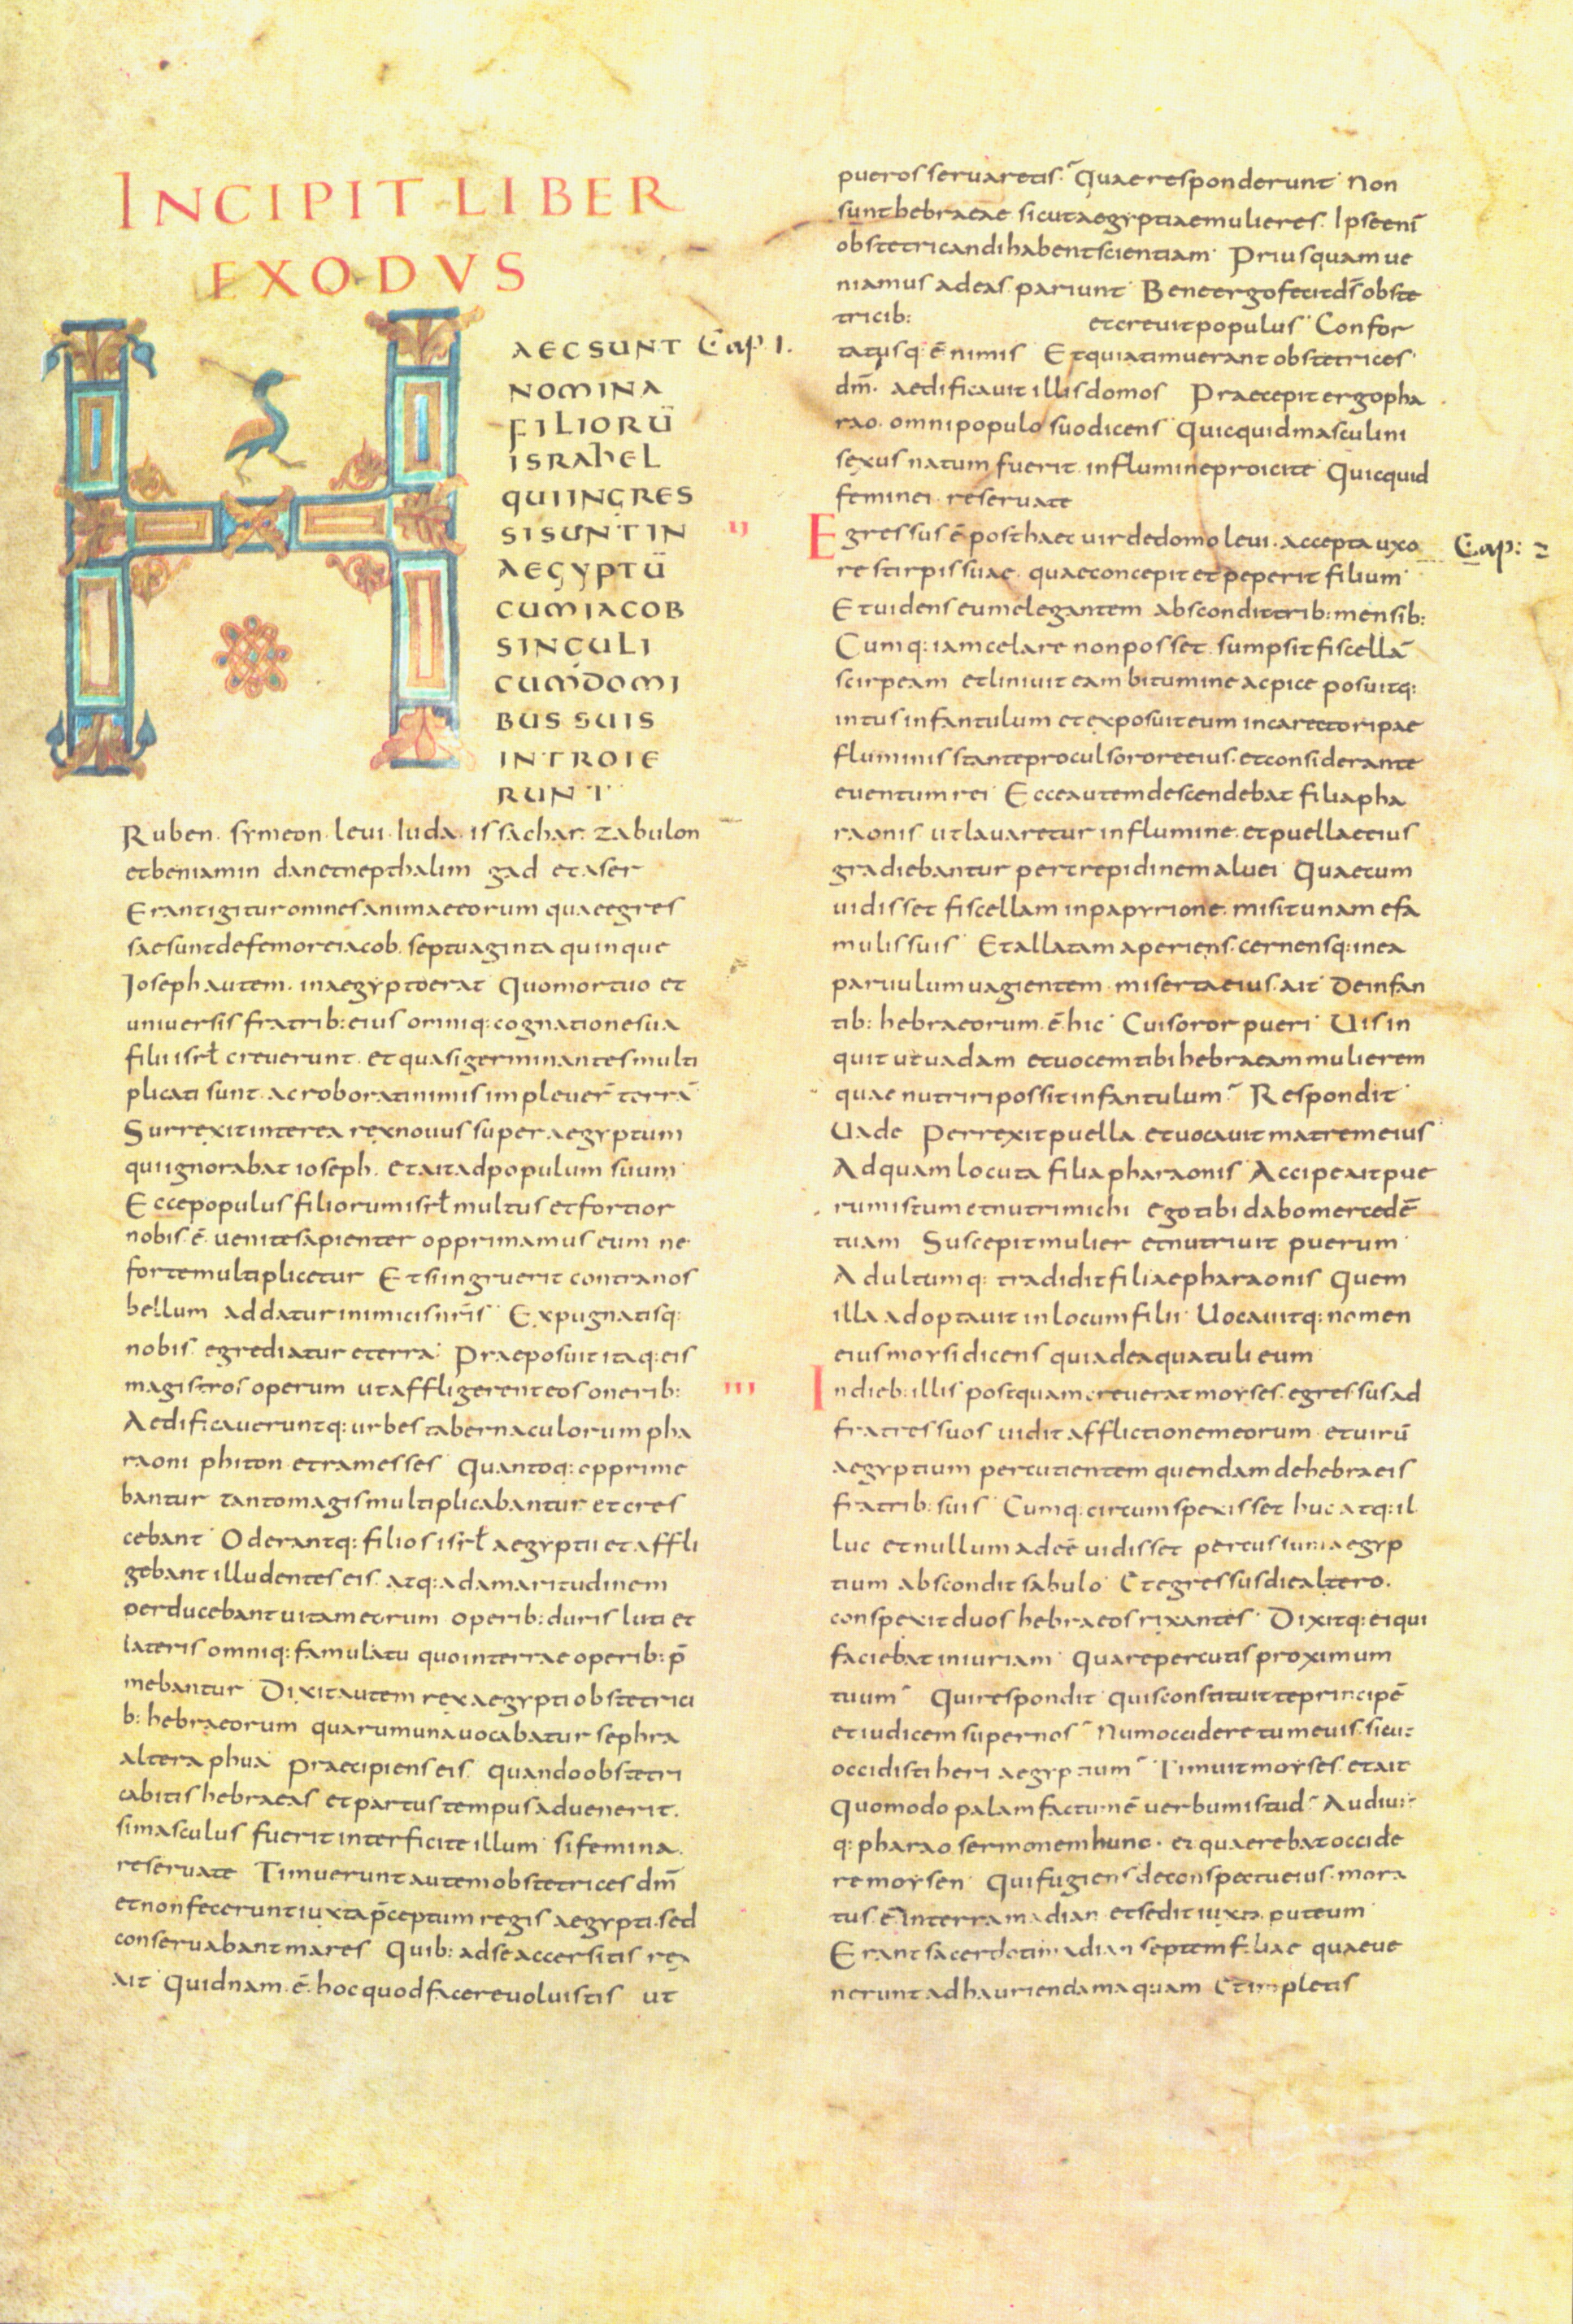 Illustrated script of Alkuin's Bibletext about 840 created in Tours, in Carolingian Minuscles